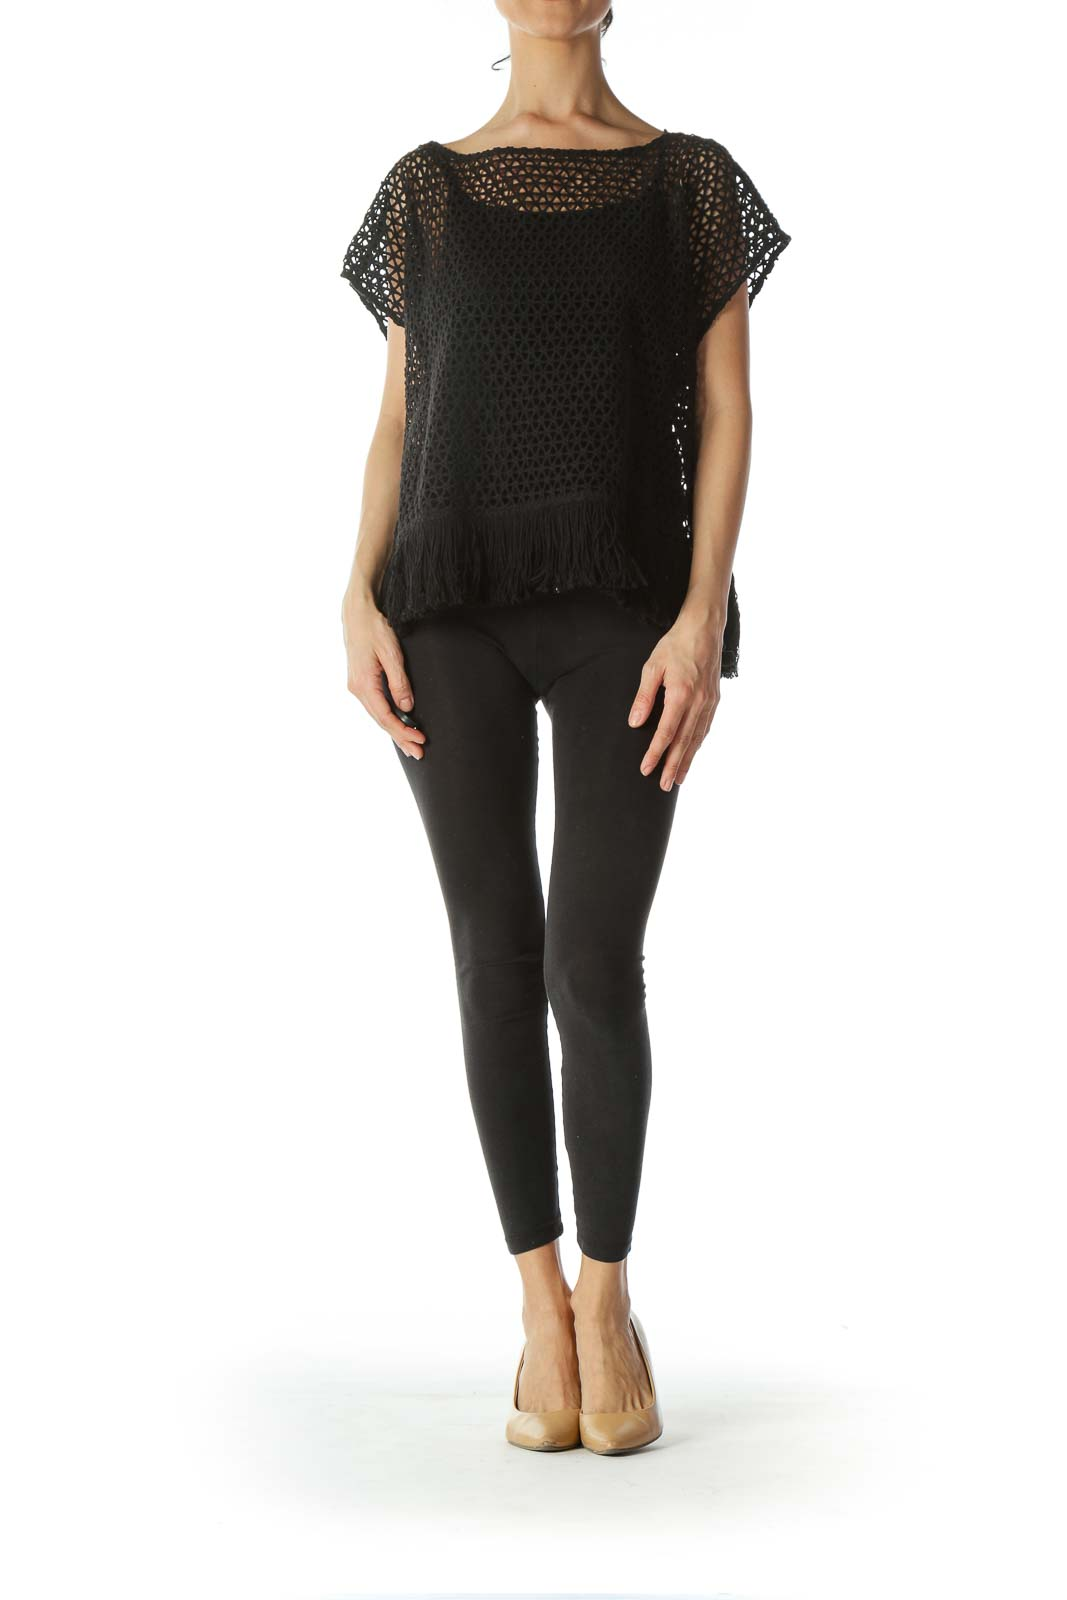 Black See-Through-Knit Waist-Fringe Top